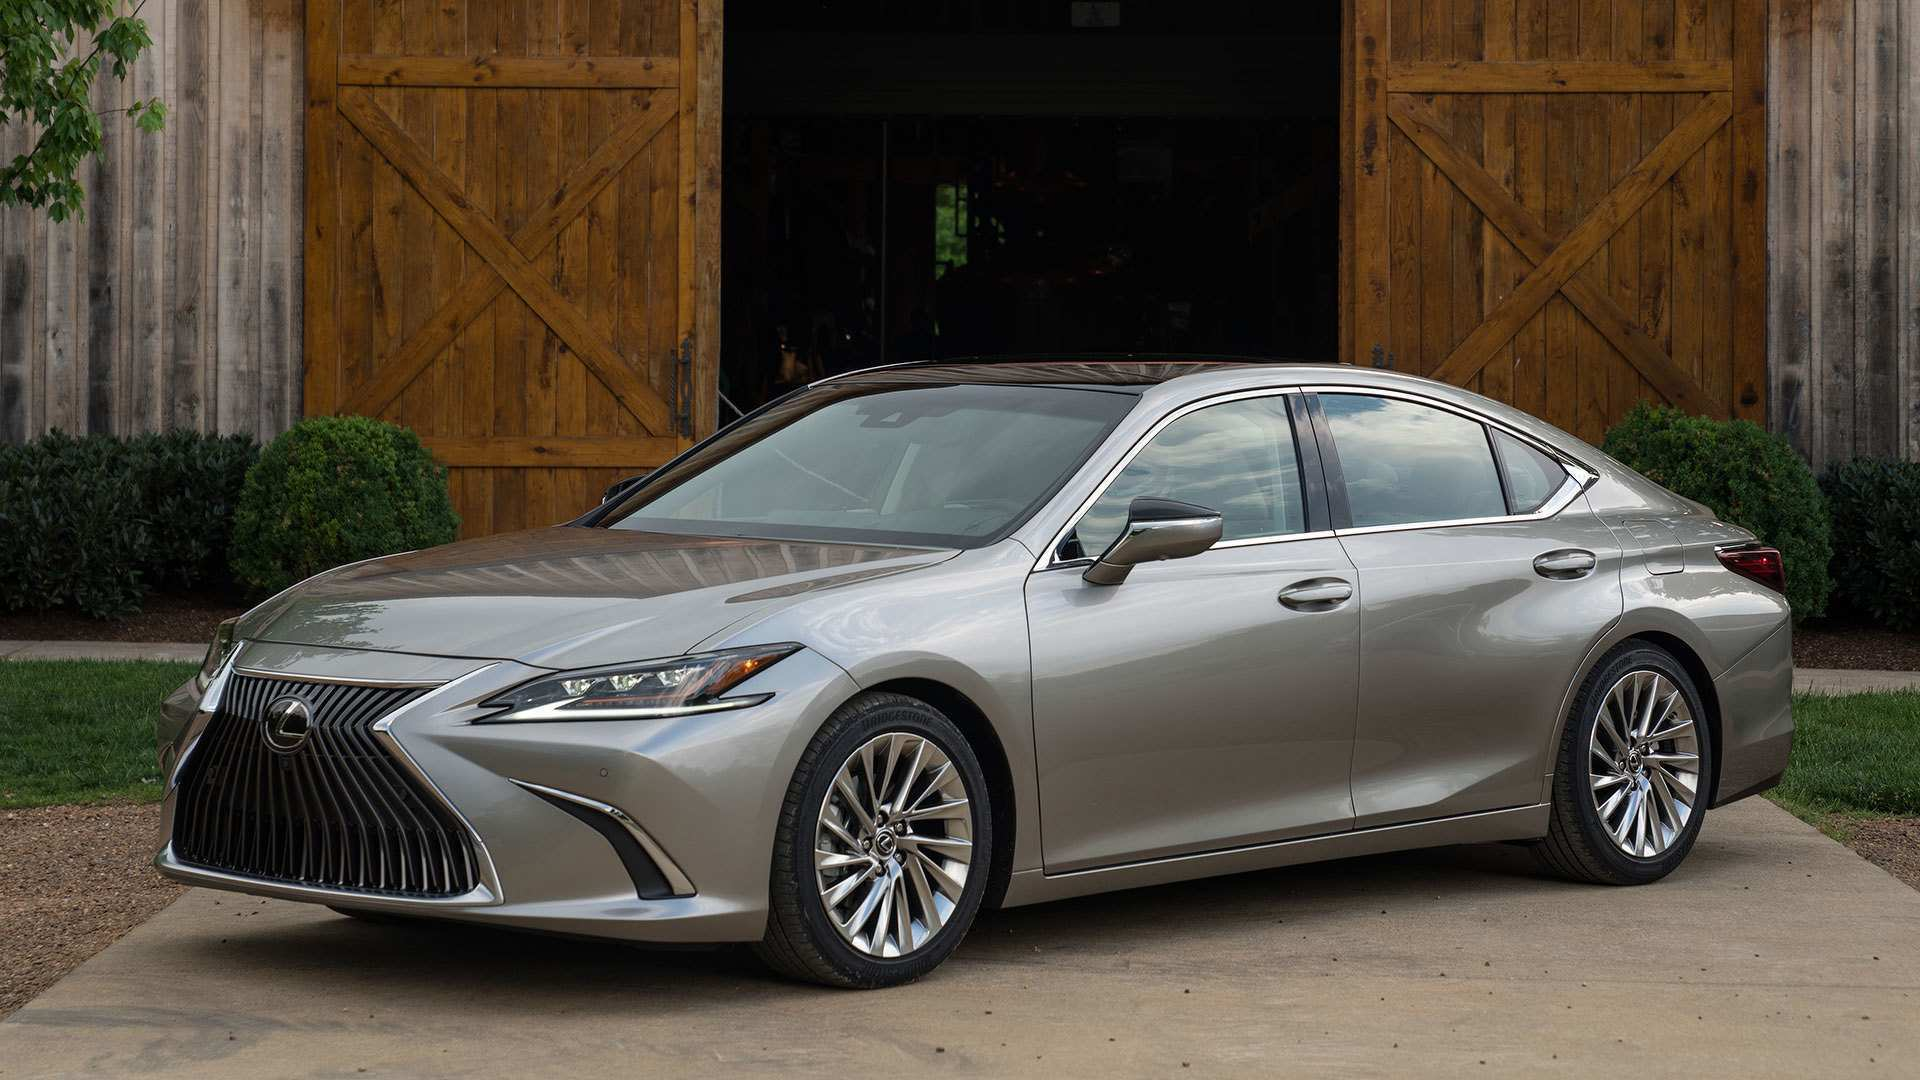 48 All New 2019 Lexus Es 350 F Sport Engine by 2019 Lexus Es 350 F Sport